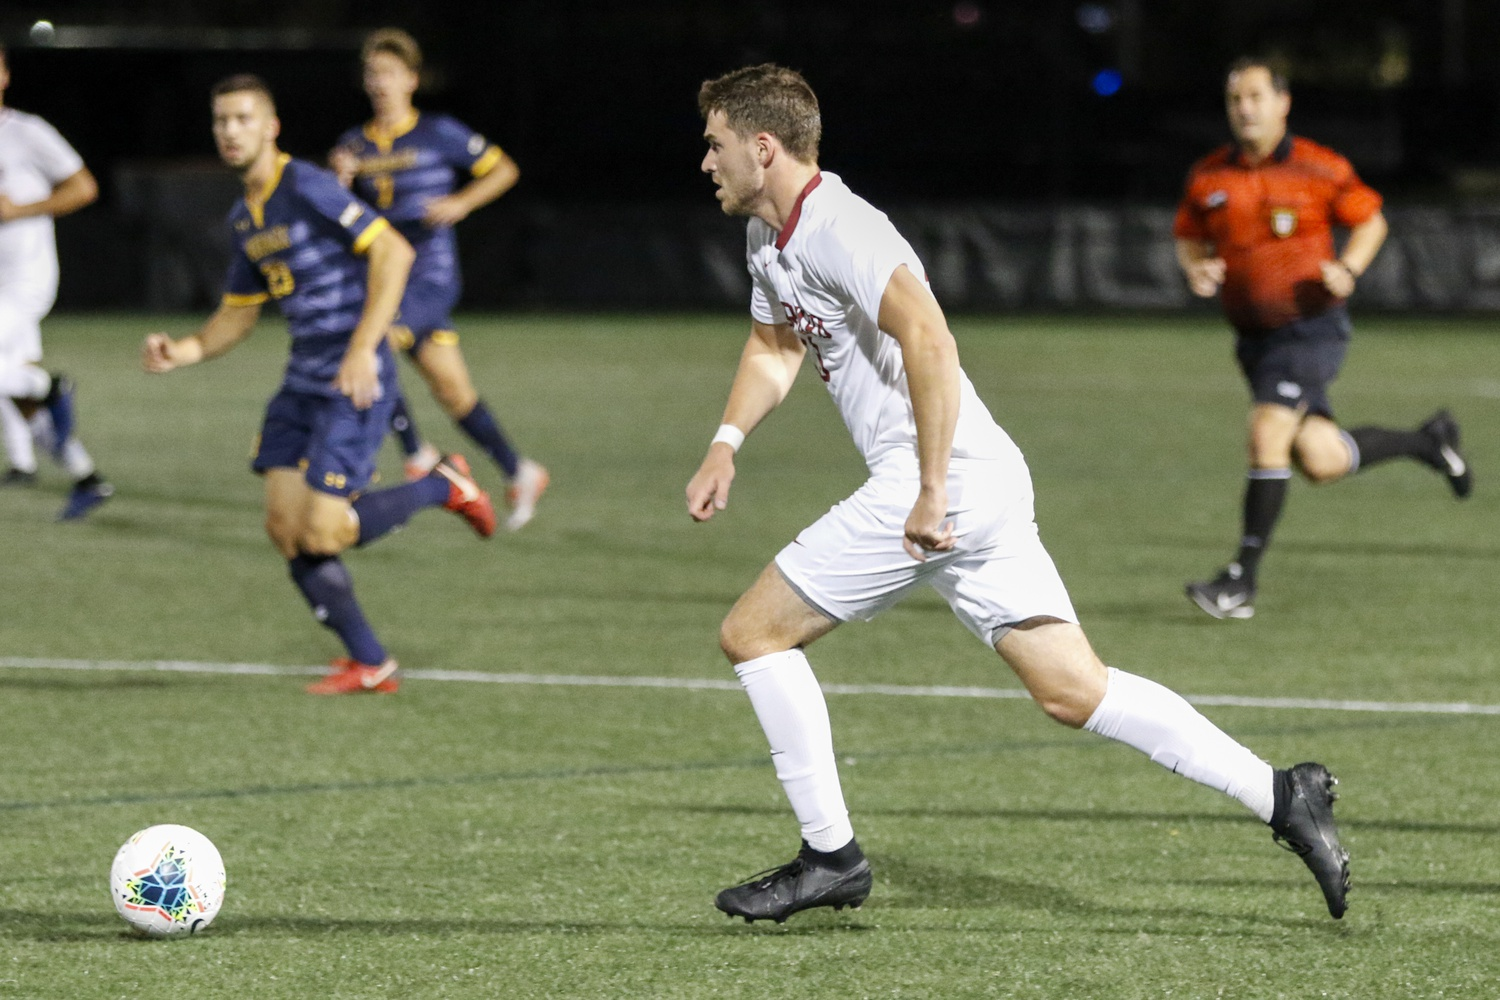 Junior forward Duncan Sutherland, pictured above in 2019, was instrumental in helping set up the Crimson's first goal in its 2-1 OT victory over the Catamounts.